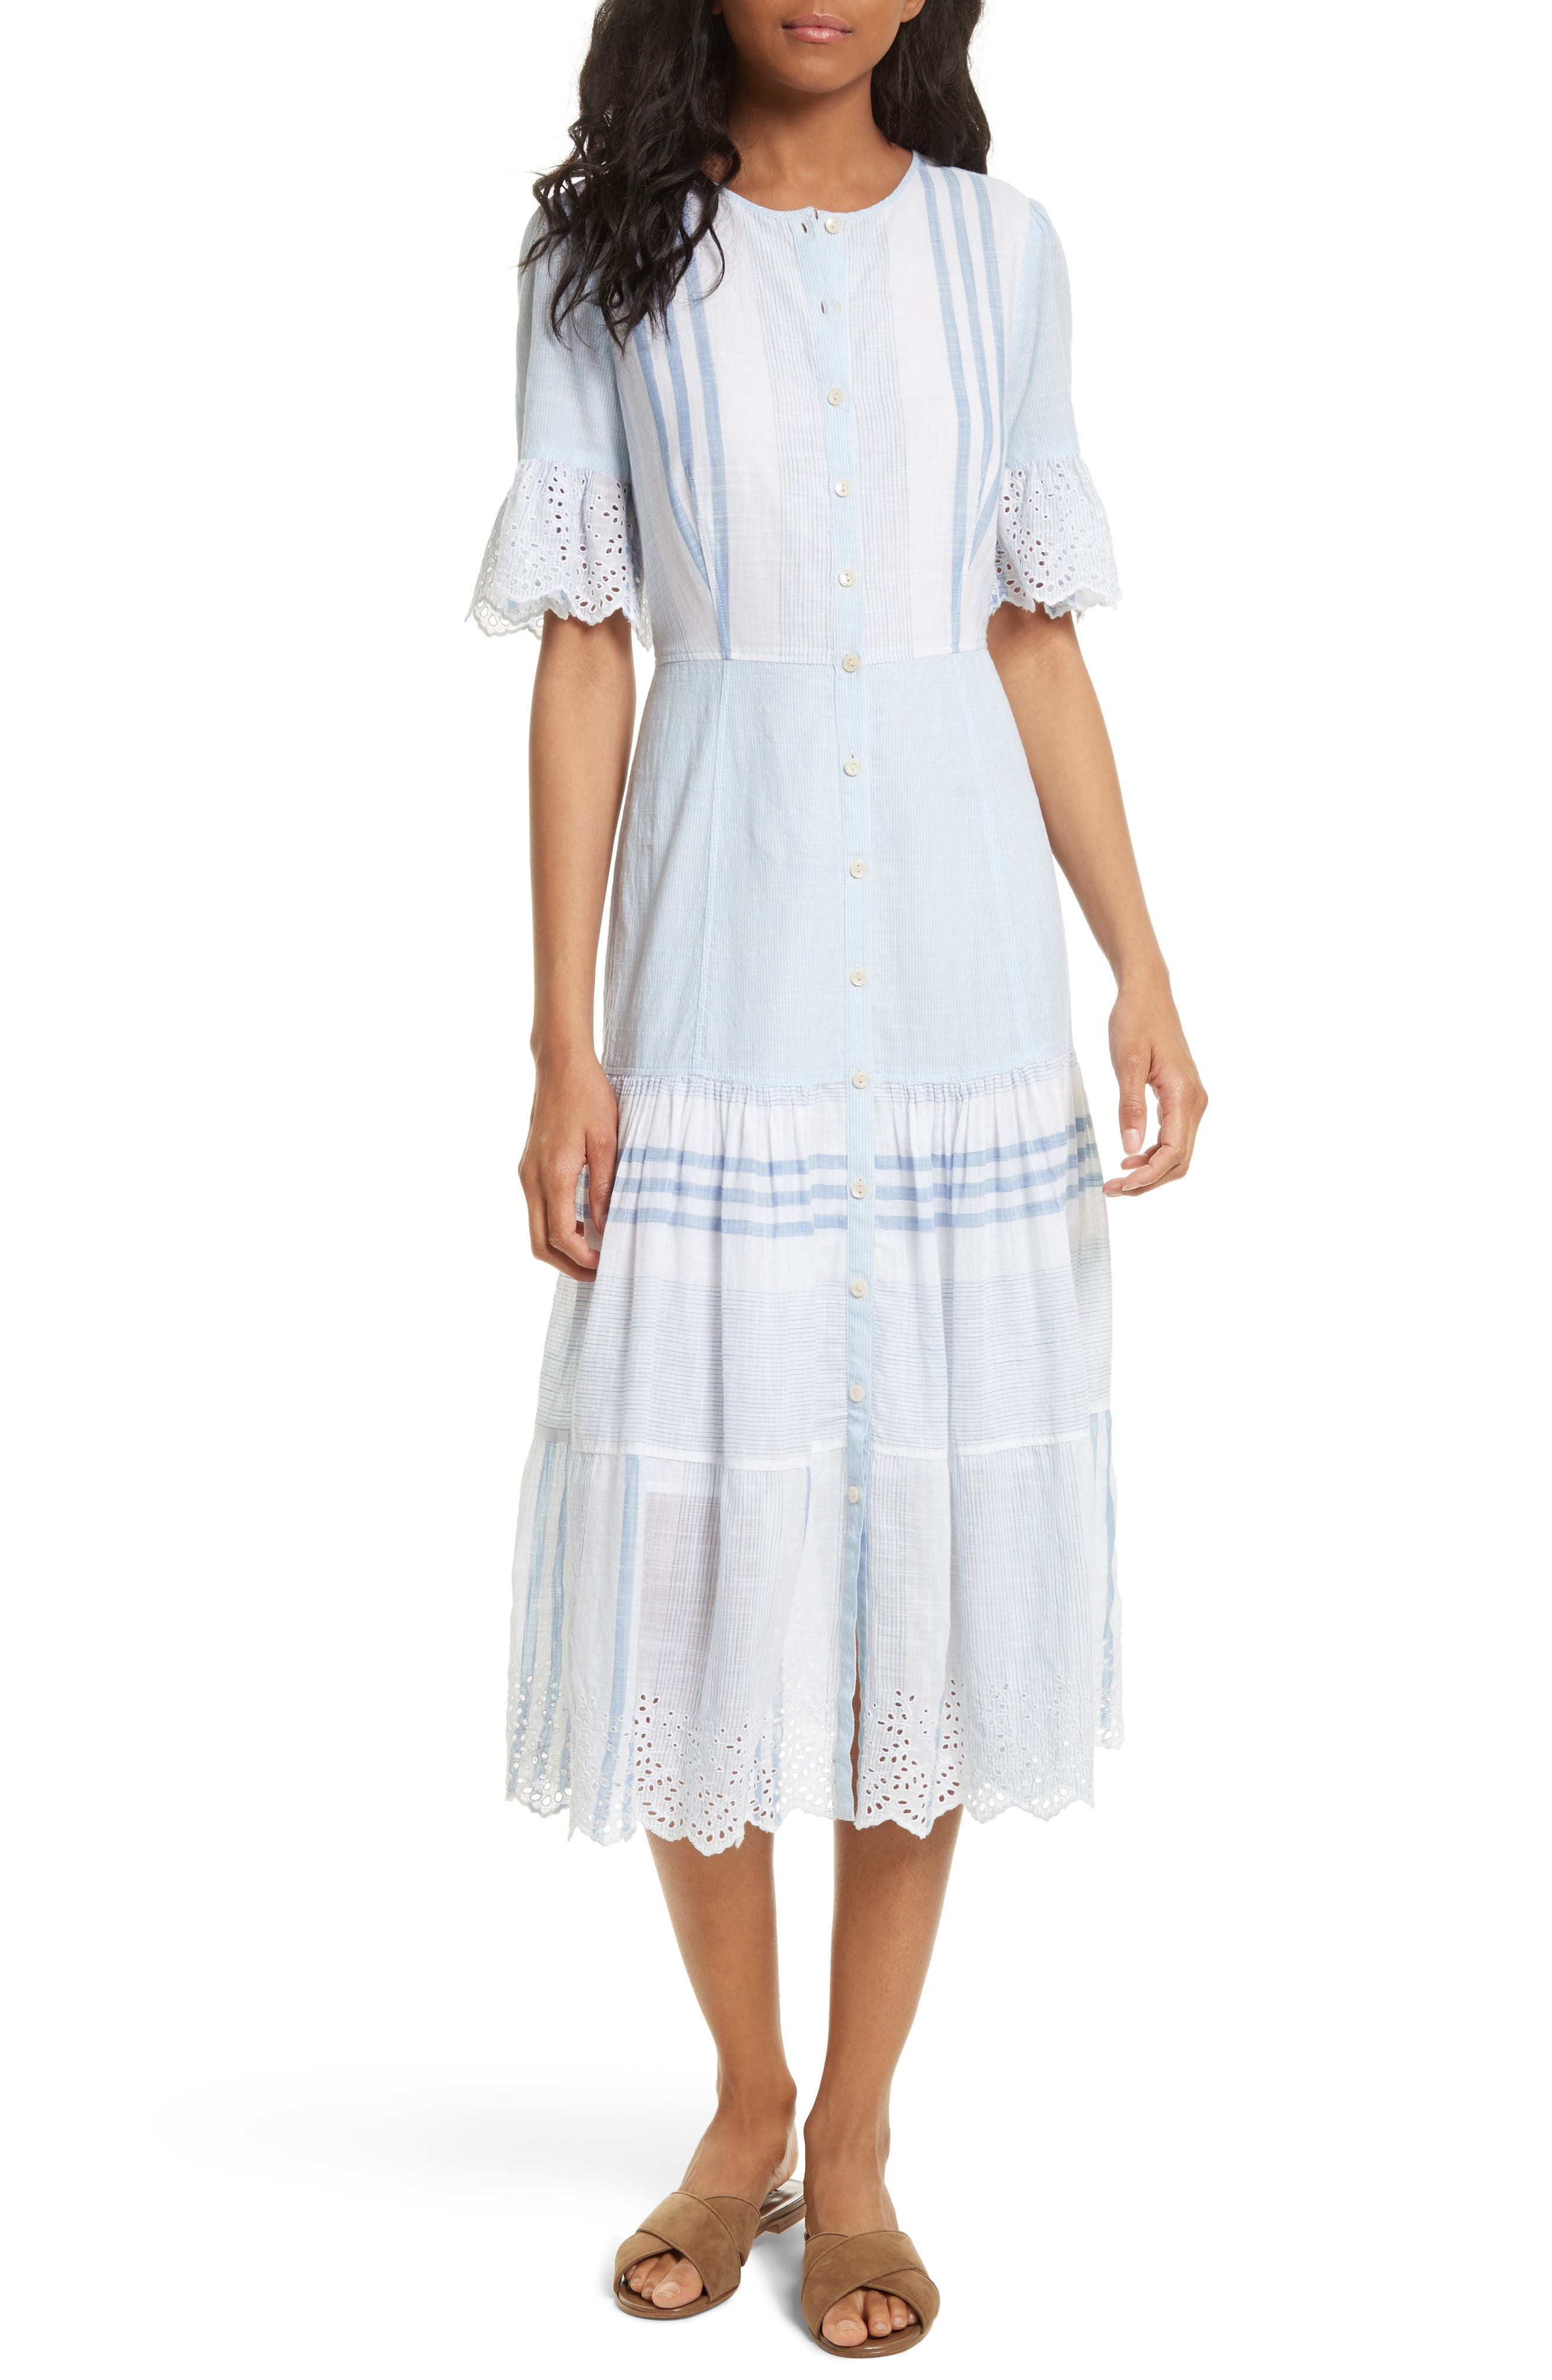 La Vie Rebecca Taylor Stripe Cotton Midi Dress